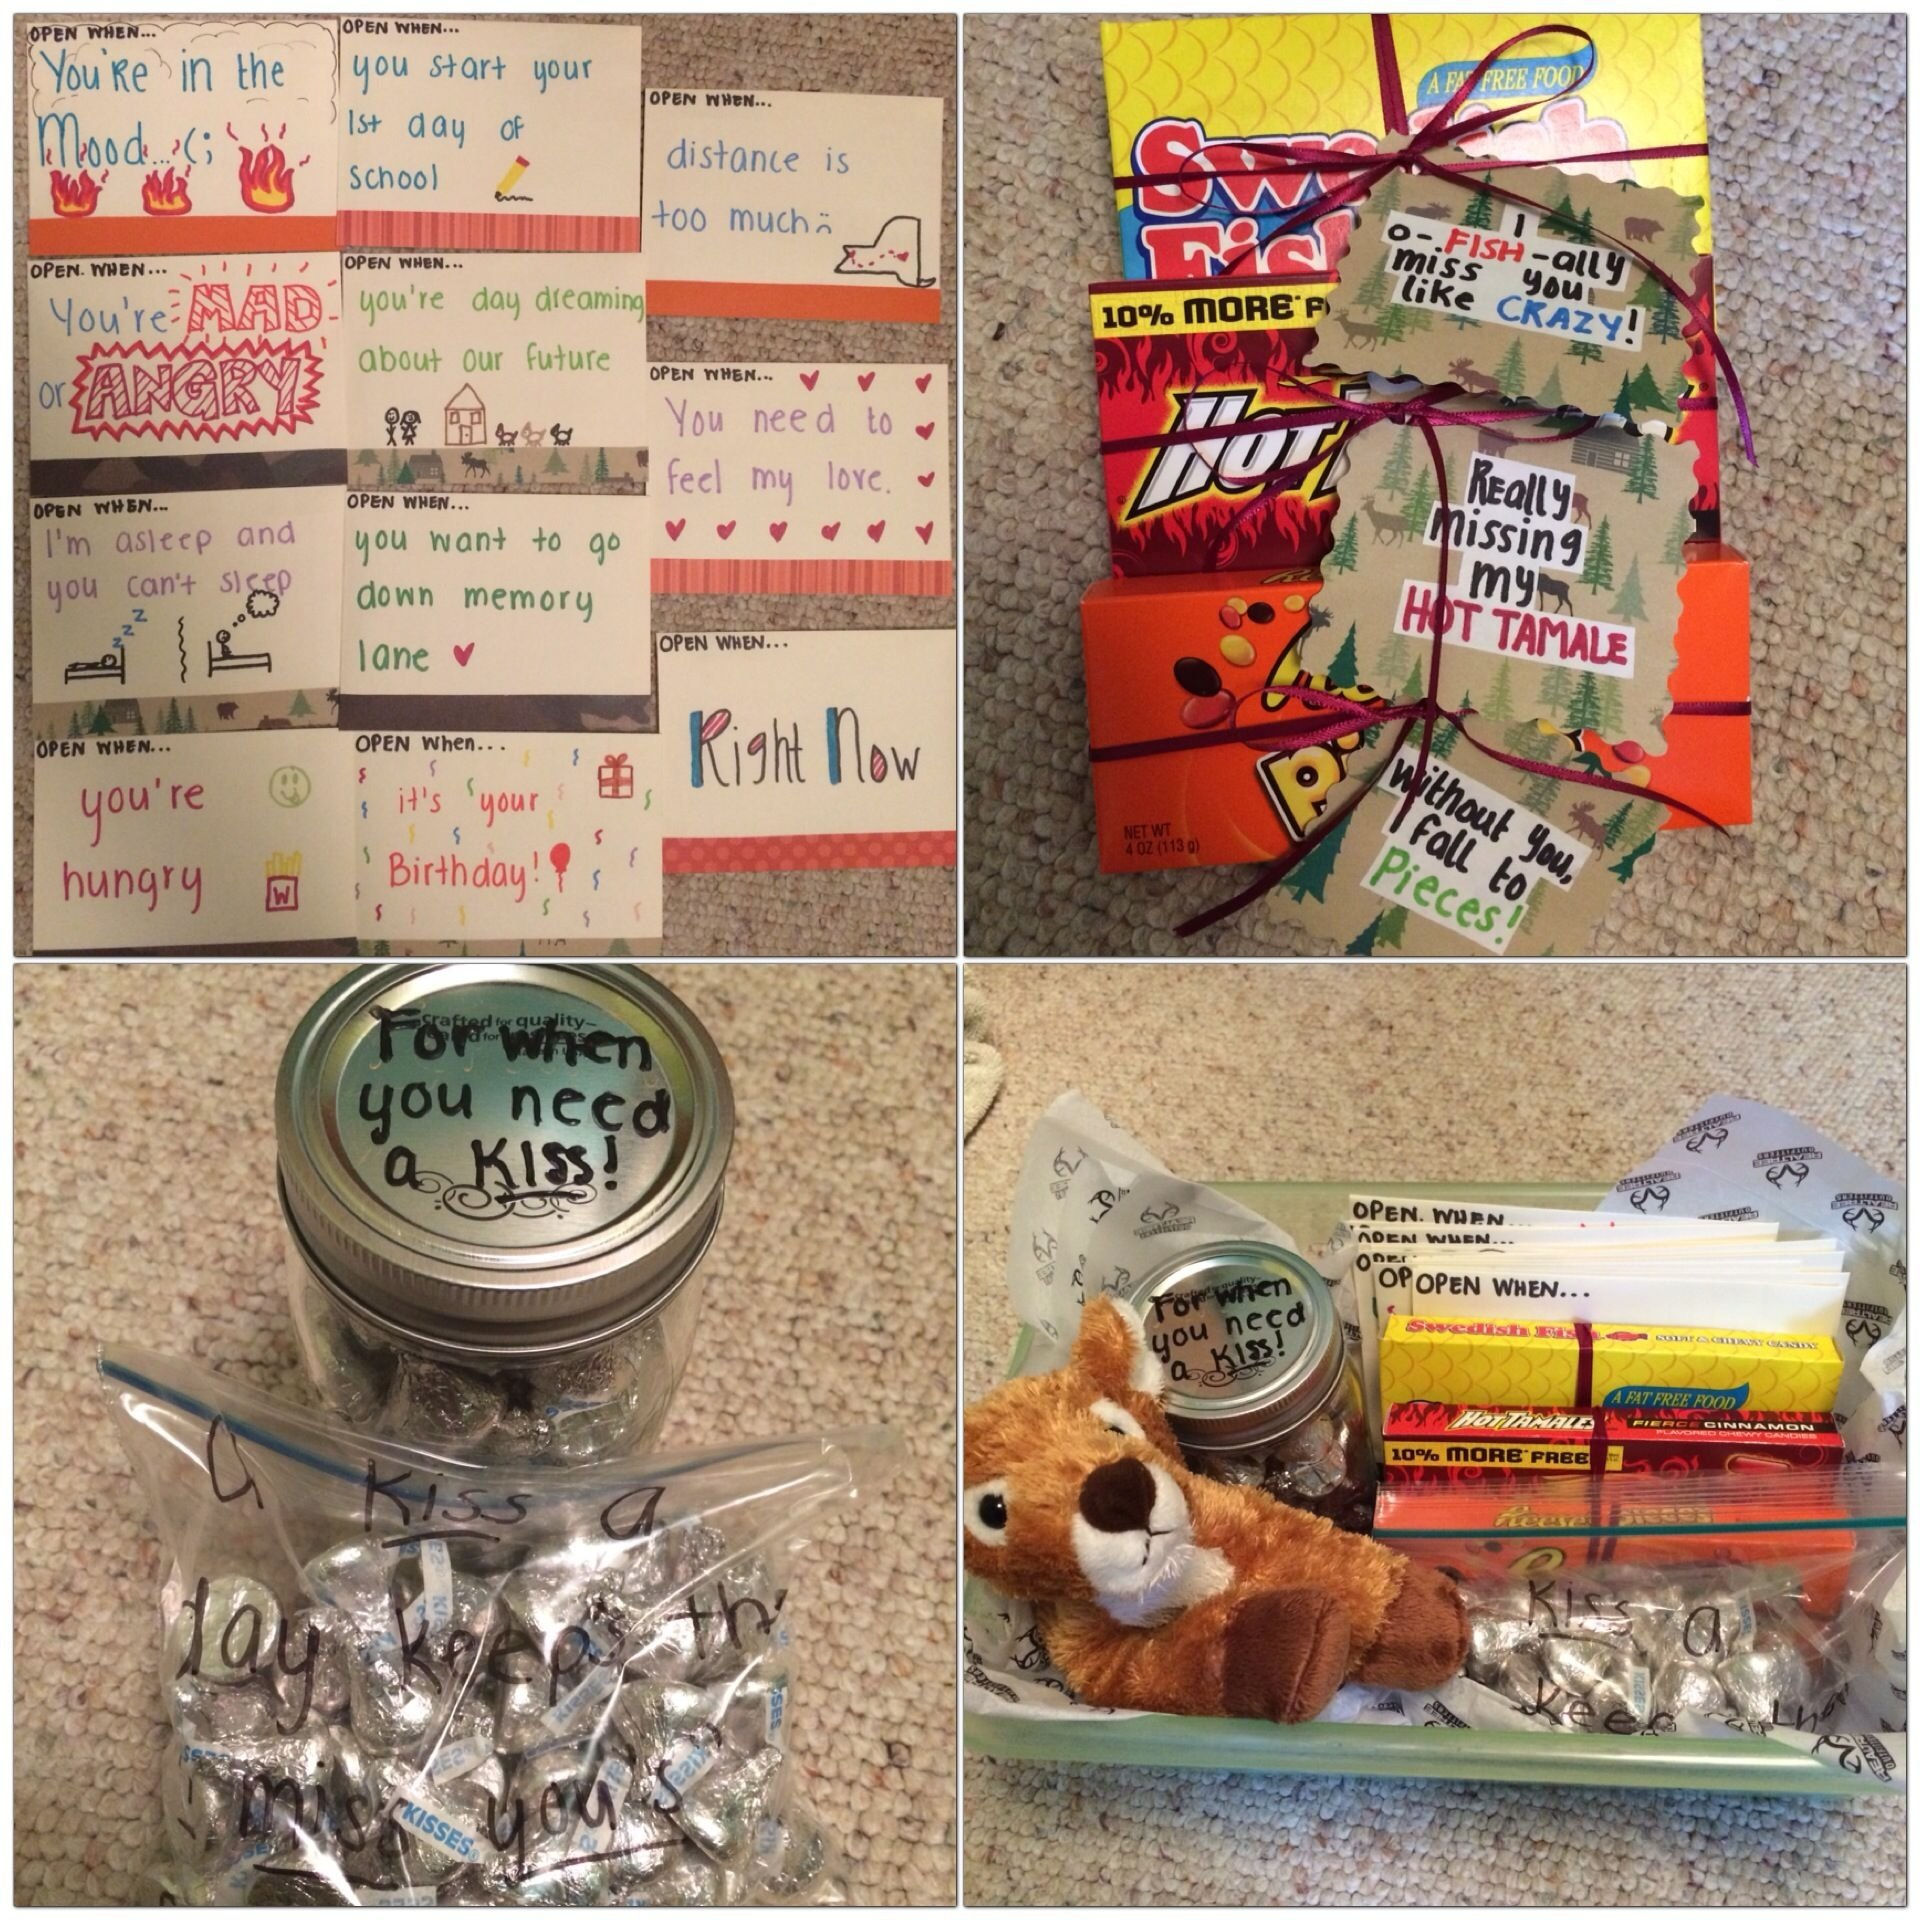 10 Most Popular Gift Ideas For My Boyfriend going away gift for my boyfriend 11 open when cards and candy